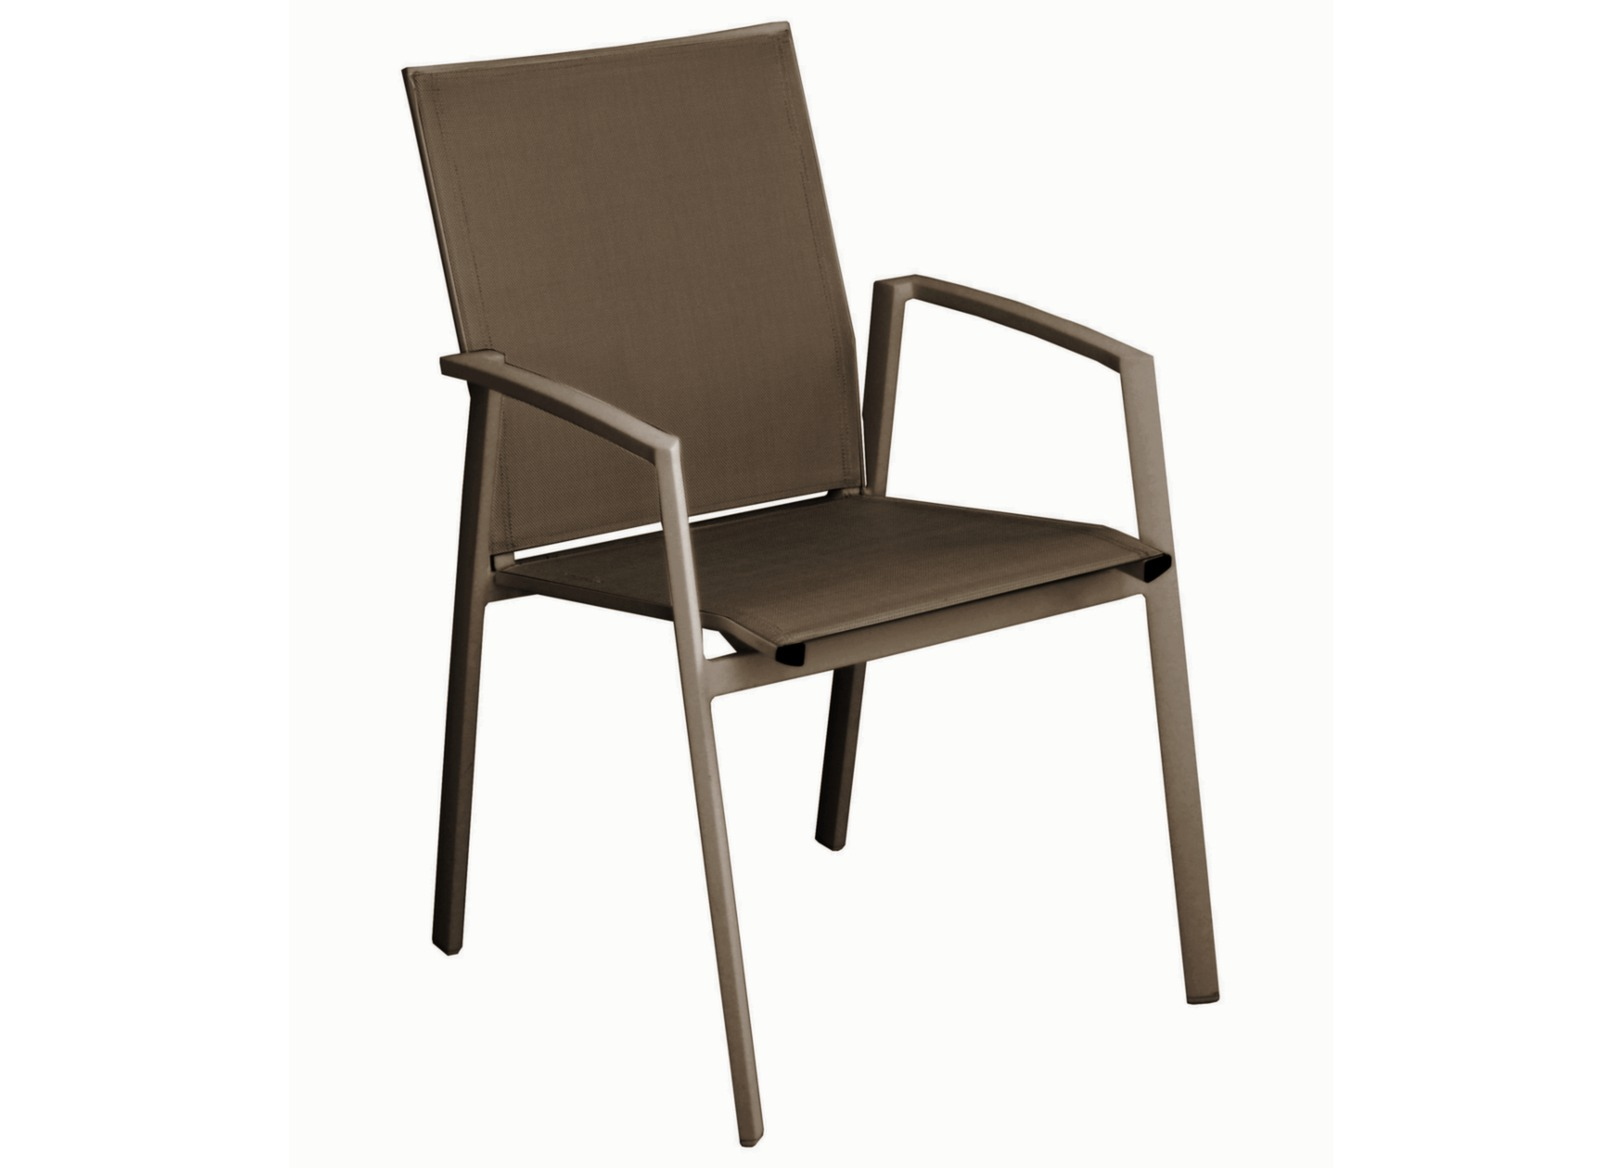 fauteuil de jardin en aluminium taupe palma proloisirs. Black Bedroom Furniture Sets. Home Design Ideas